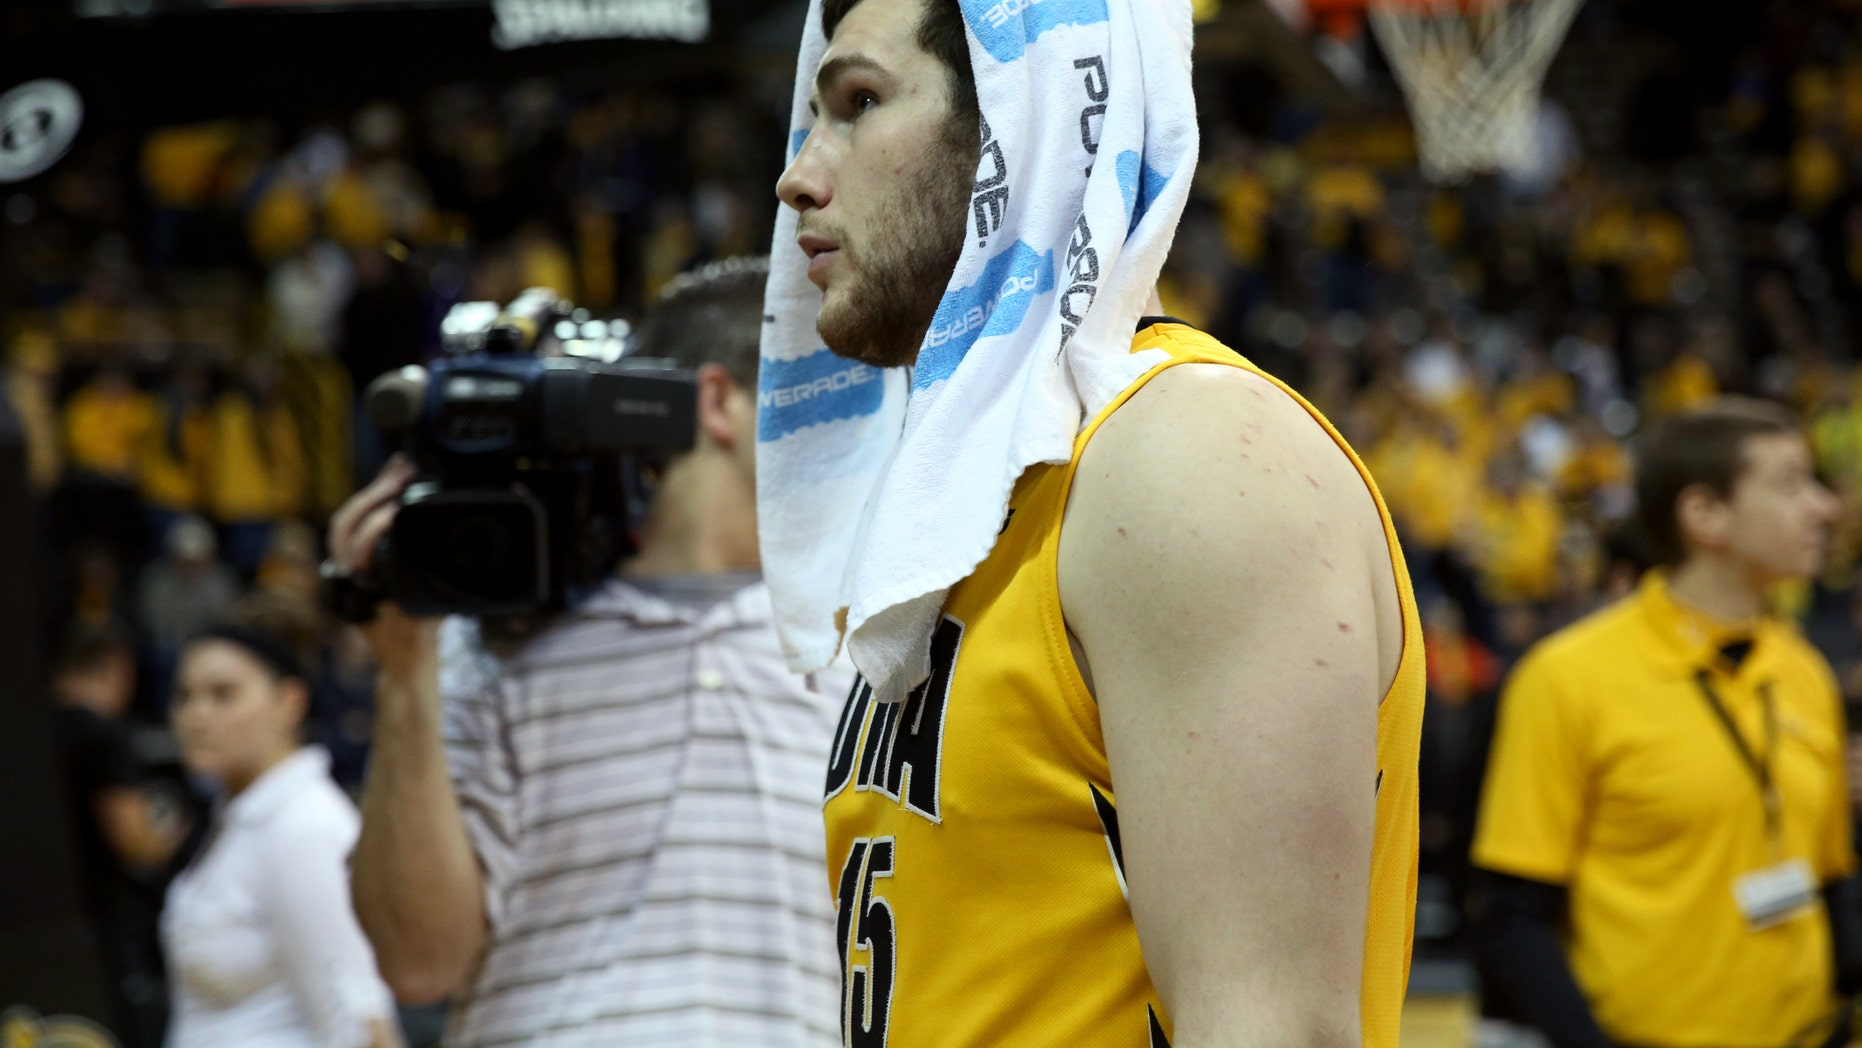 Iowa forward Zach McCabe walks off the floor after their 79-74 loss to Wisconsin during an NCAA college basketball game in Iowa City, Iowa, Saturday, Feb. 22, 2014. Wisconsin won 79-74. (AP Photo/Justin Hayworth)